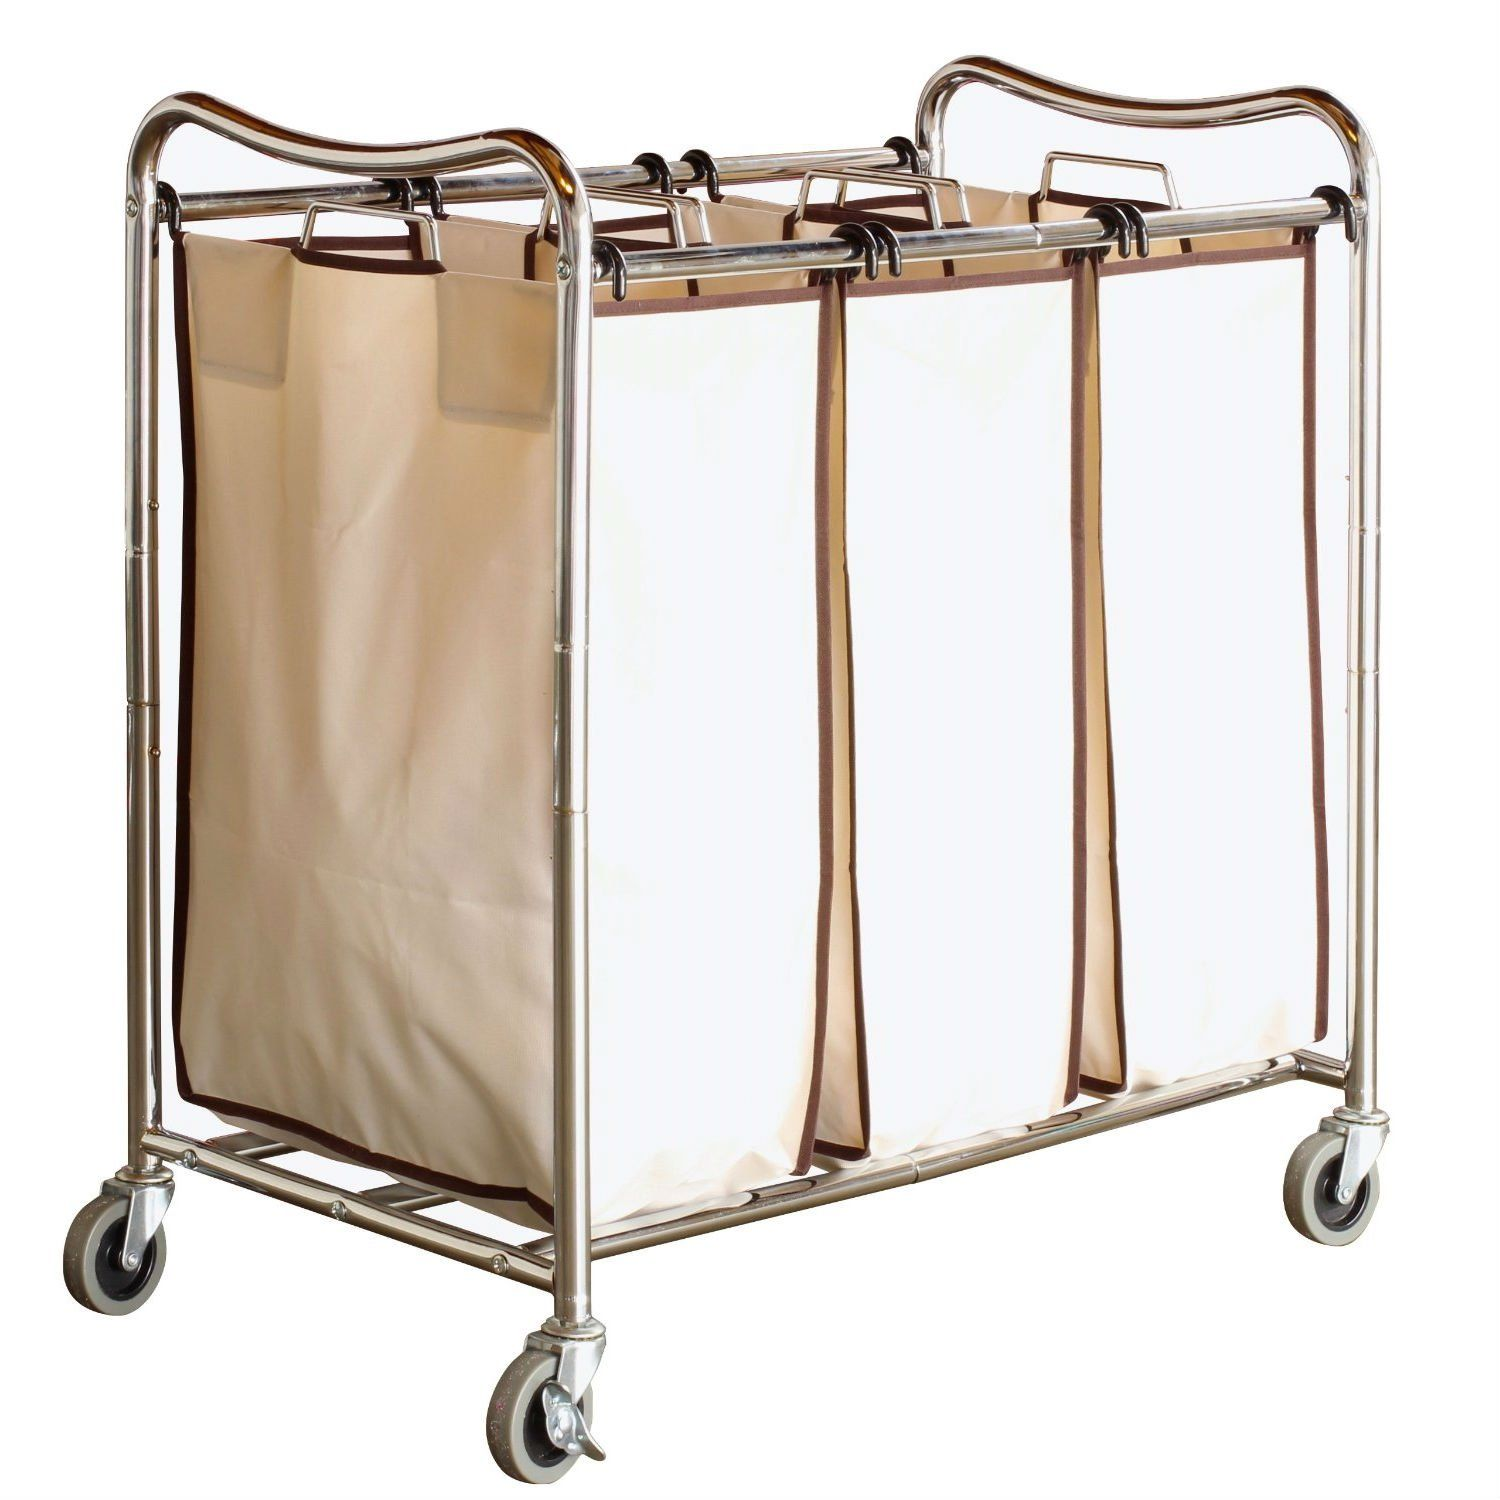 Heavy Duty Laundry Cart With 3 Cream Tan Hamper Bags And Lockable Wheels Laundry Sorter Laundry Cart Best Laundry Detergent